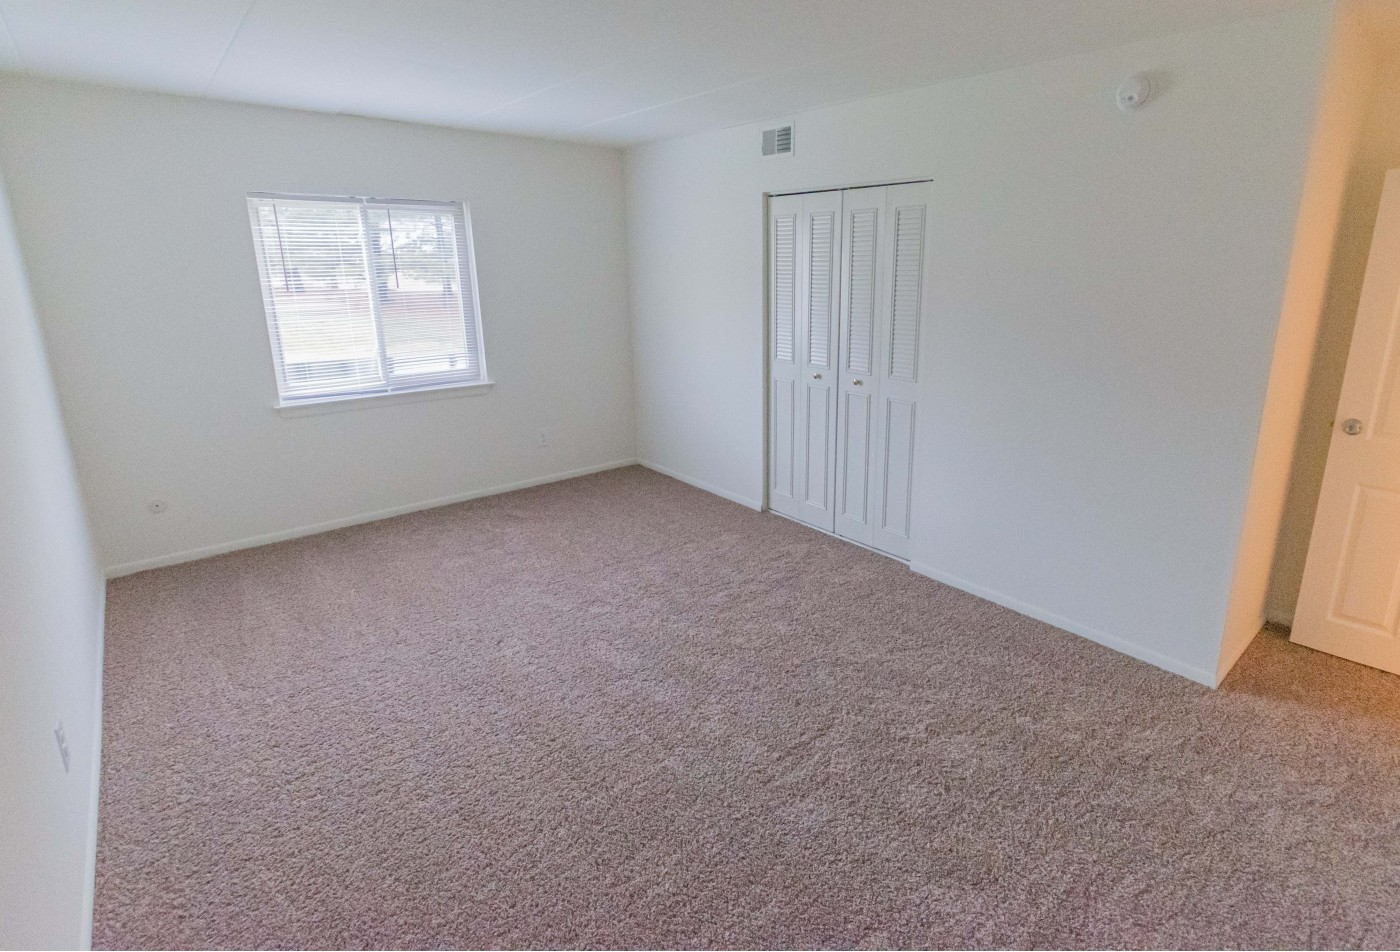 2 Bedroom Apartments West Chester Pa | Caln East Apartments